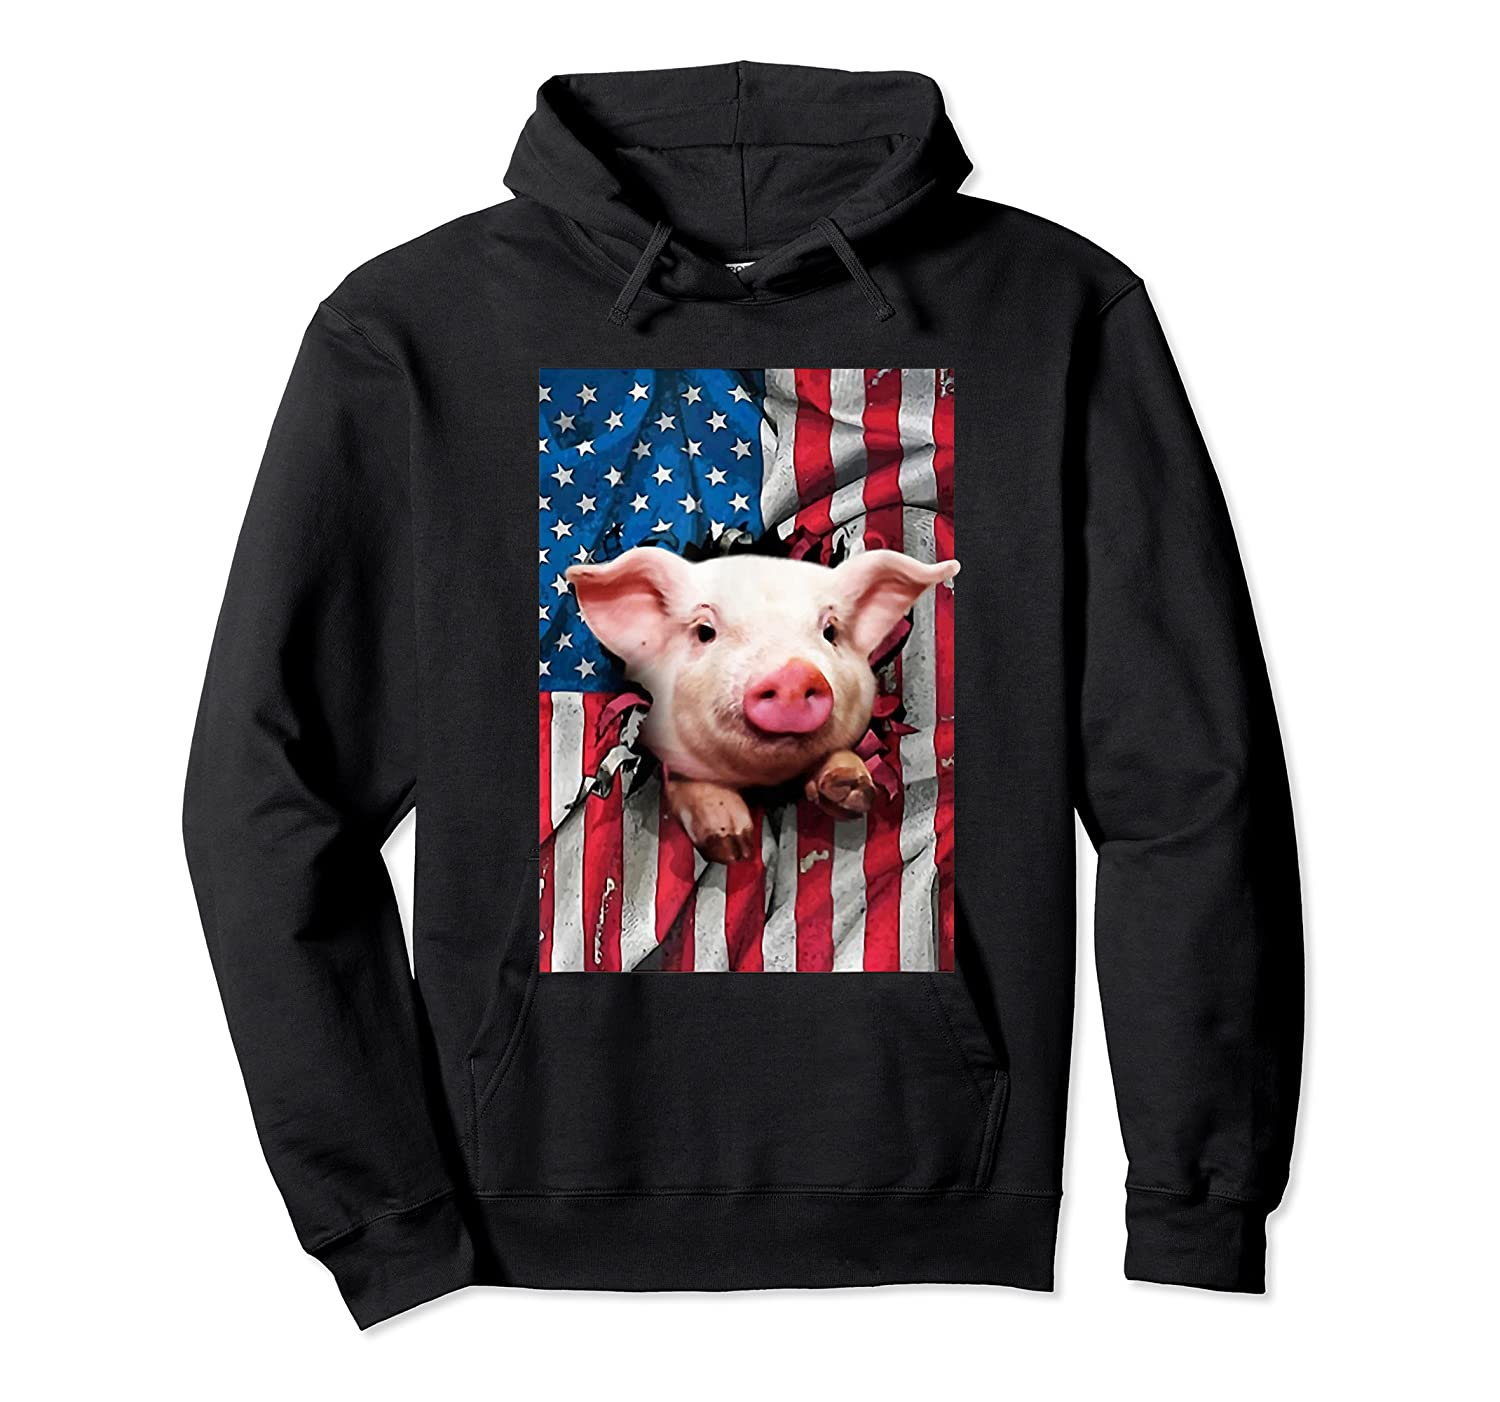 Pig American Flag Gift Funny 4th Of July America Shirts Unisex Pullover Hoodie